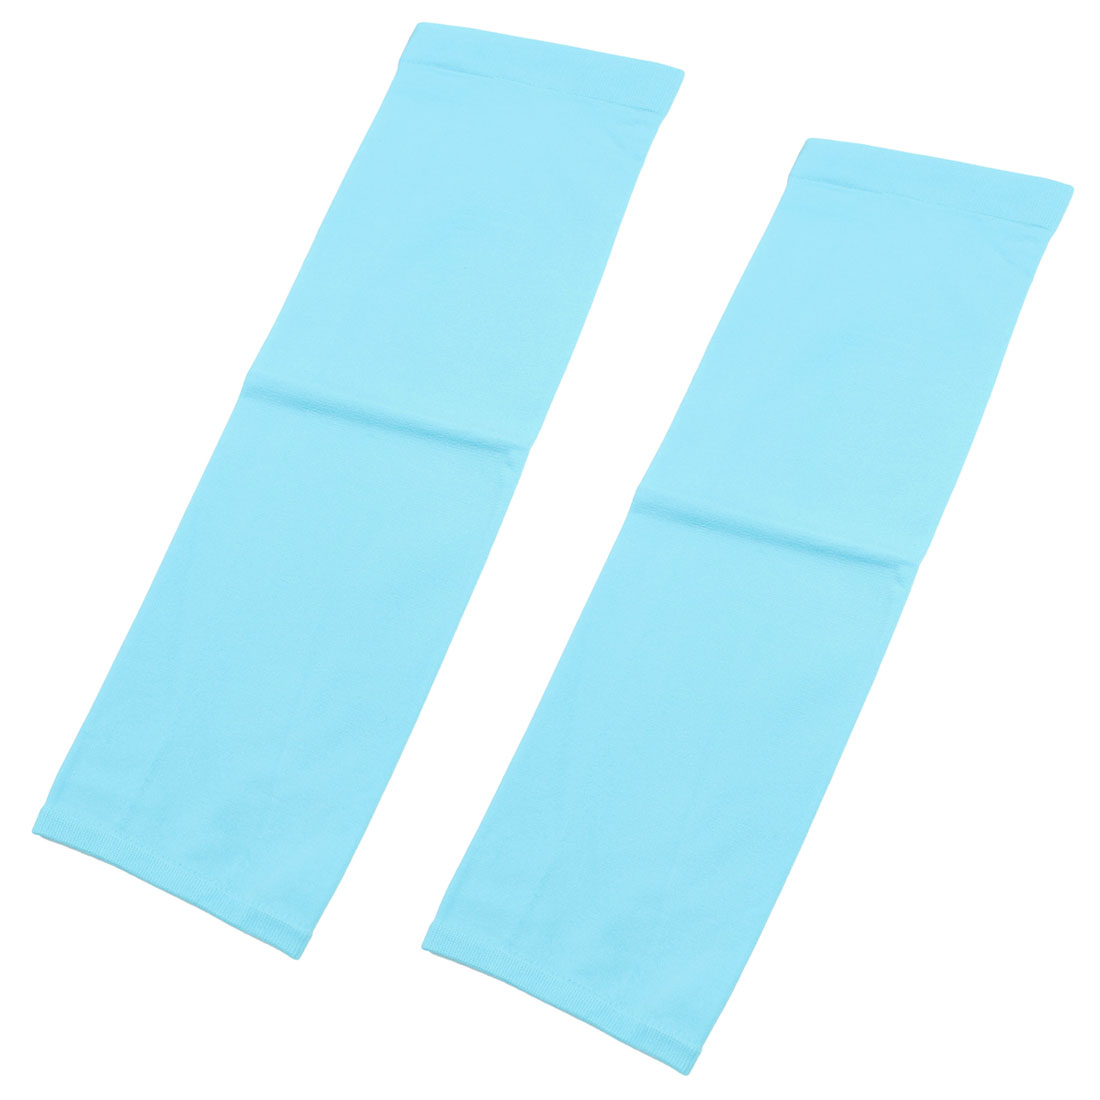 2 Pcs Outdoor Activities Fingerless Arm Warmers Gloves Sky Blue for Adult